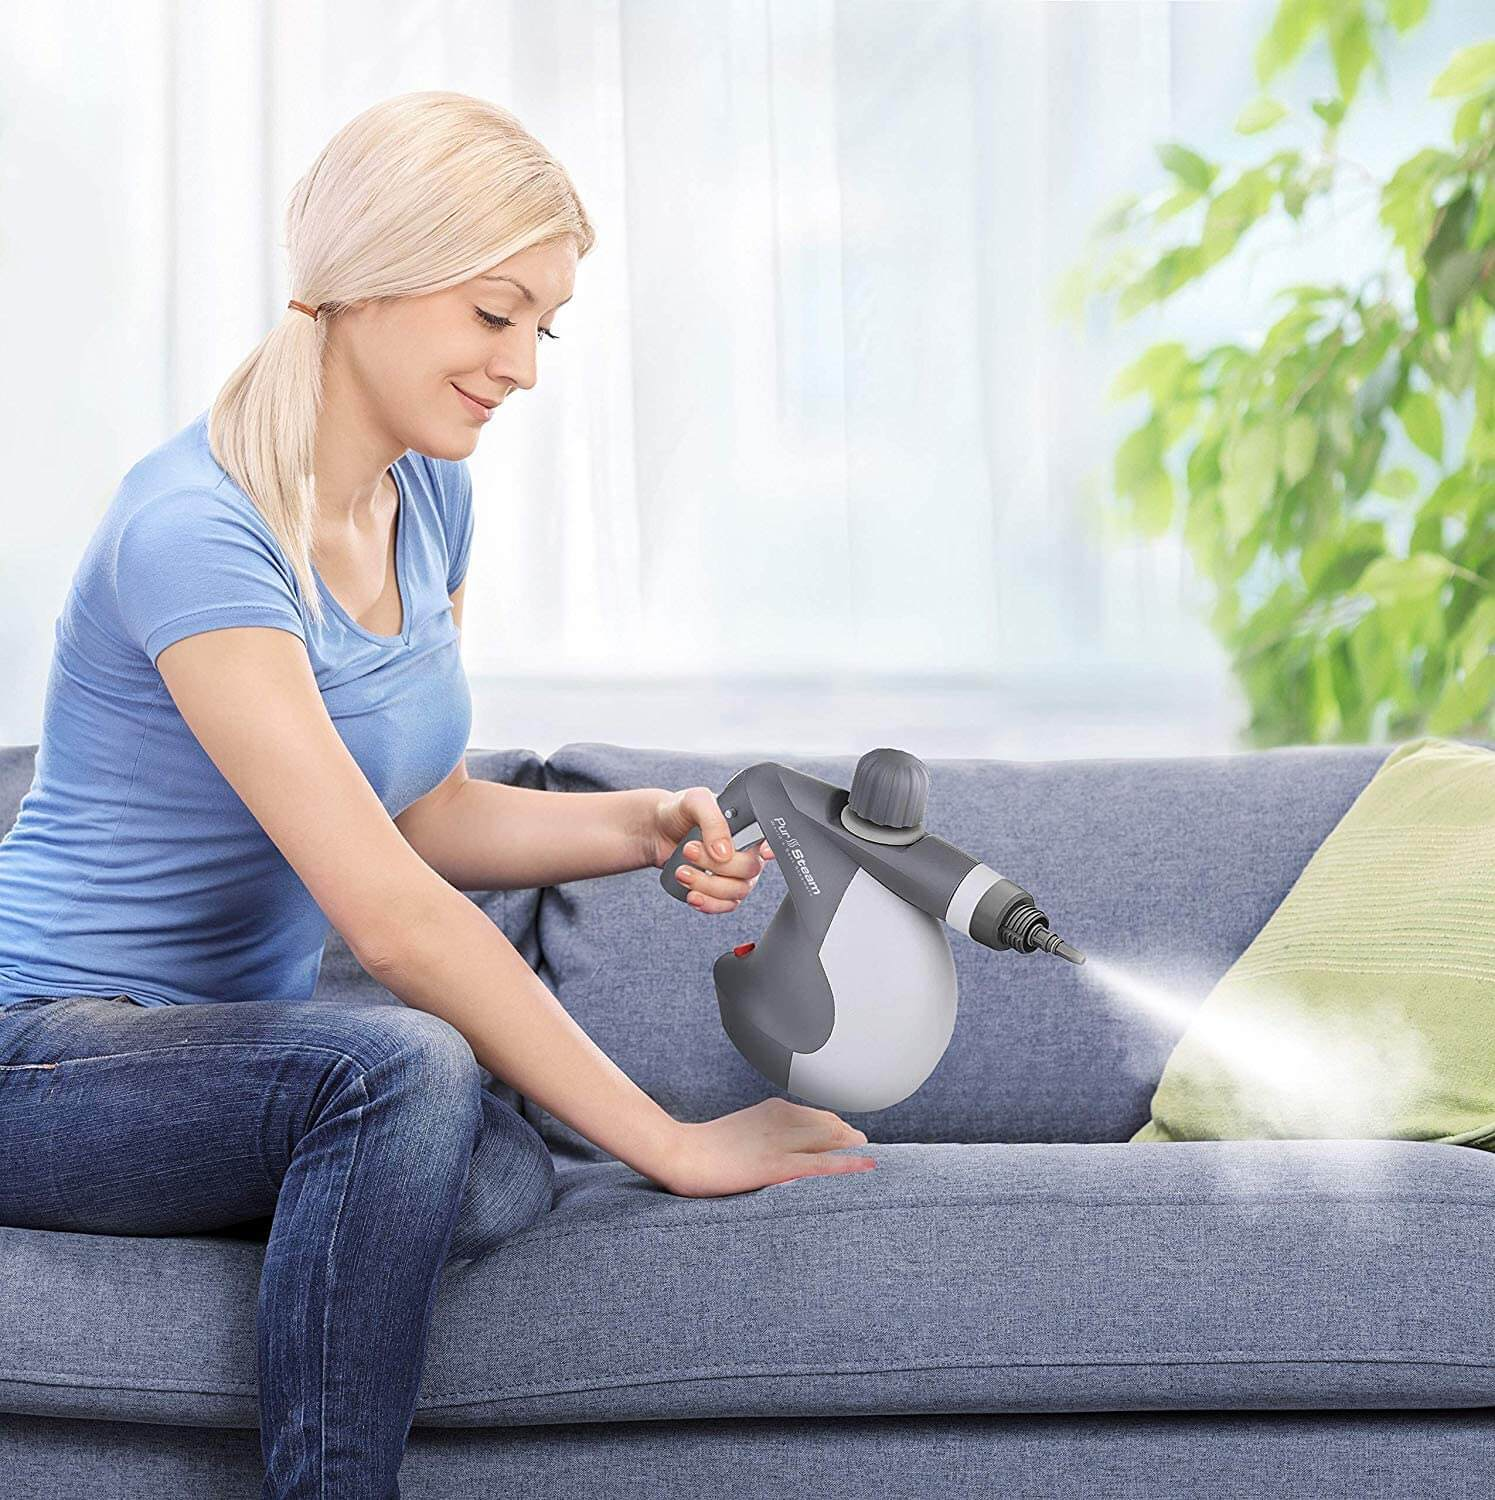 Young blonde woman using steam cleaner to clean sofa